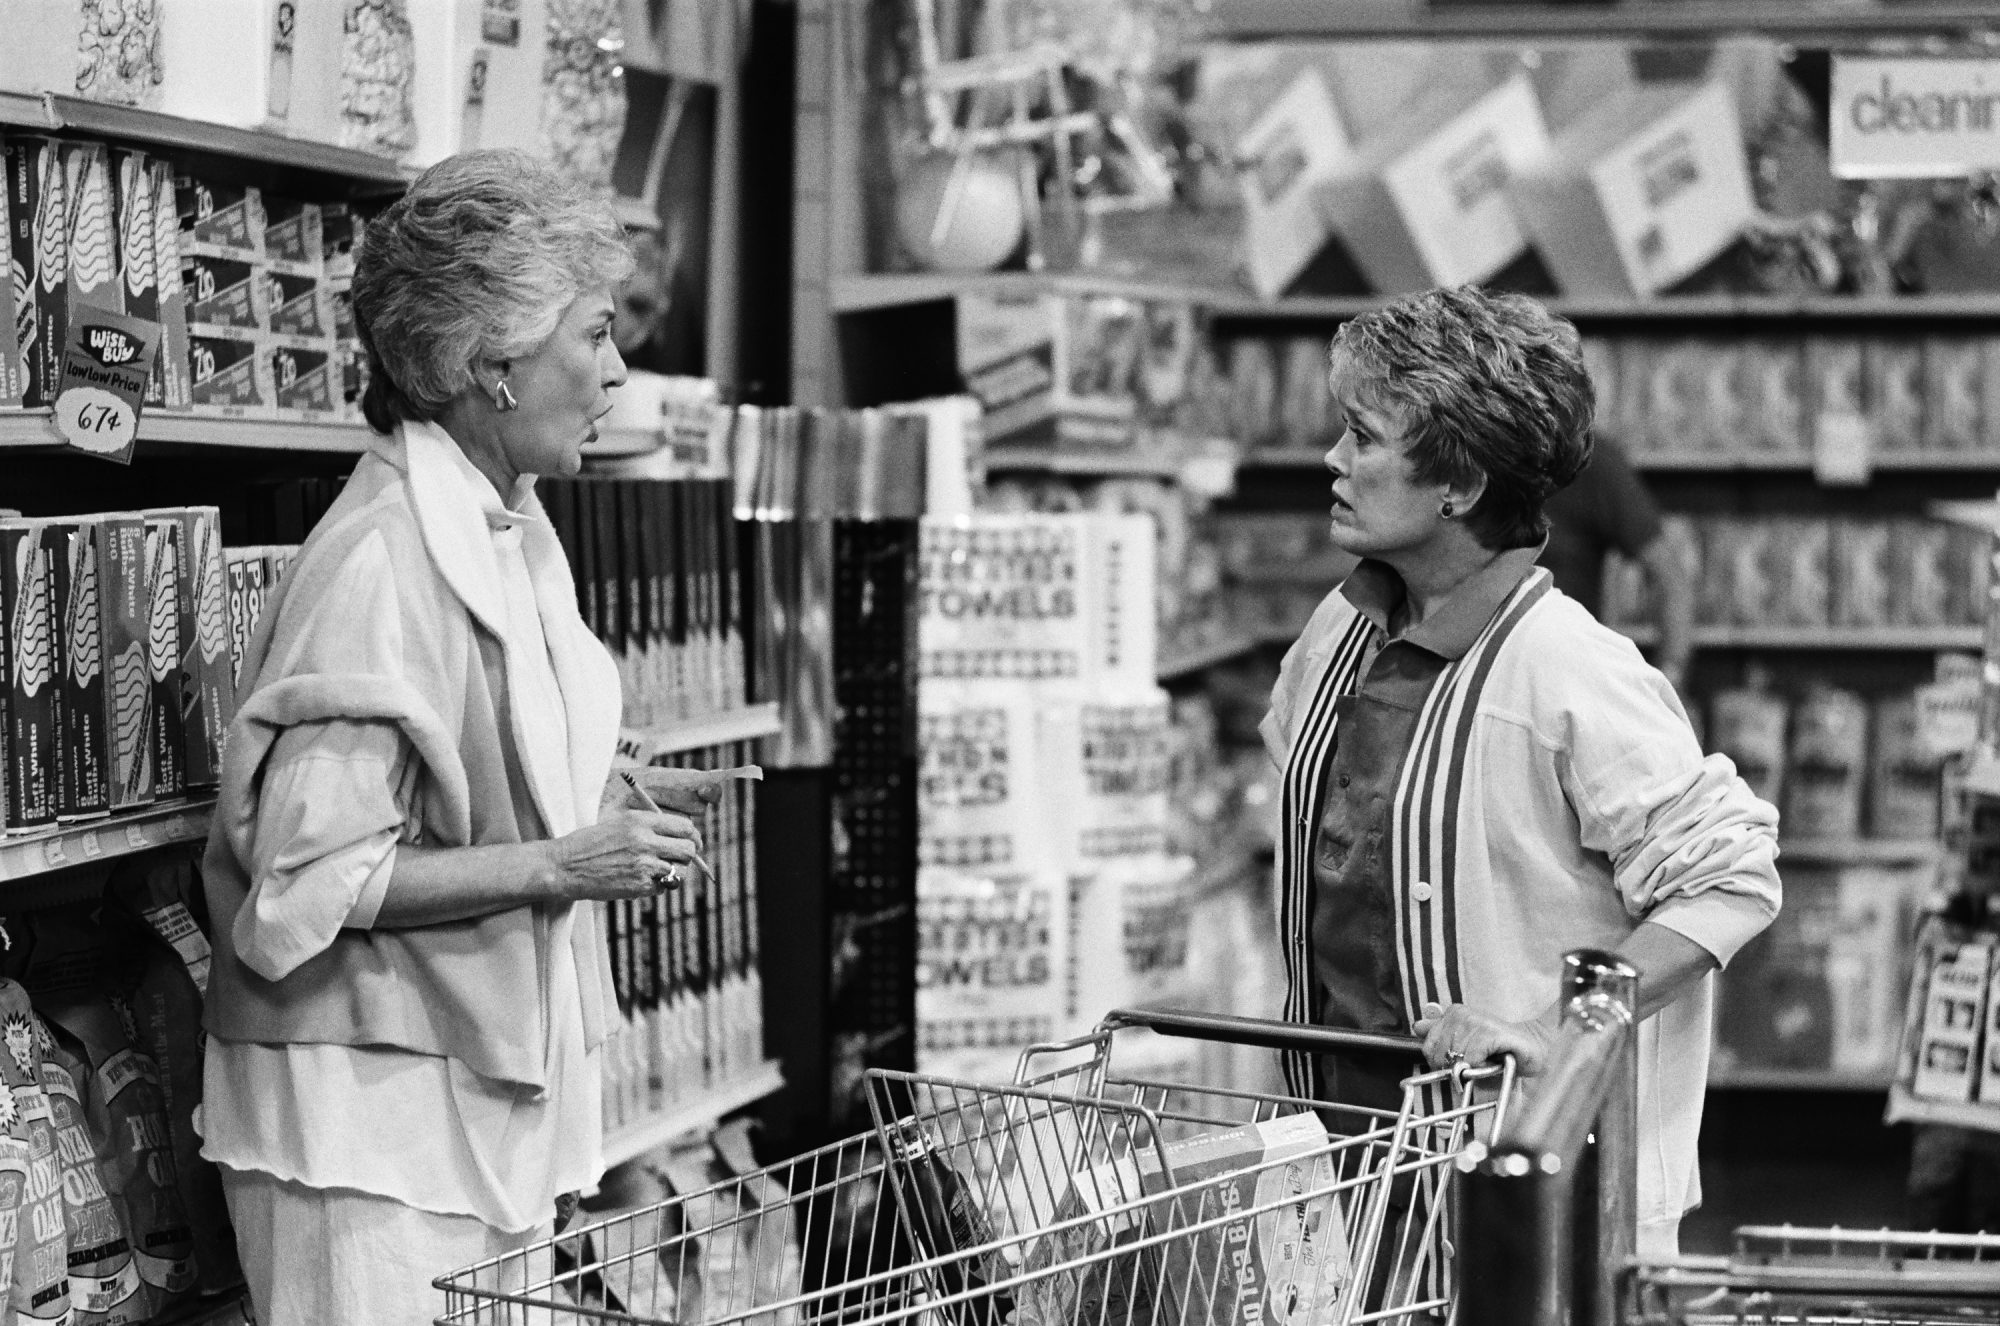 The Golden Girls: Dorothy and Blanche Arguing in Grocery Store